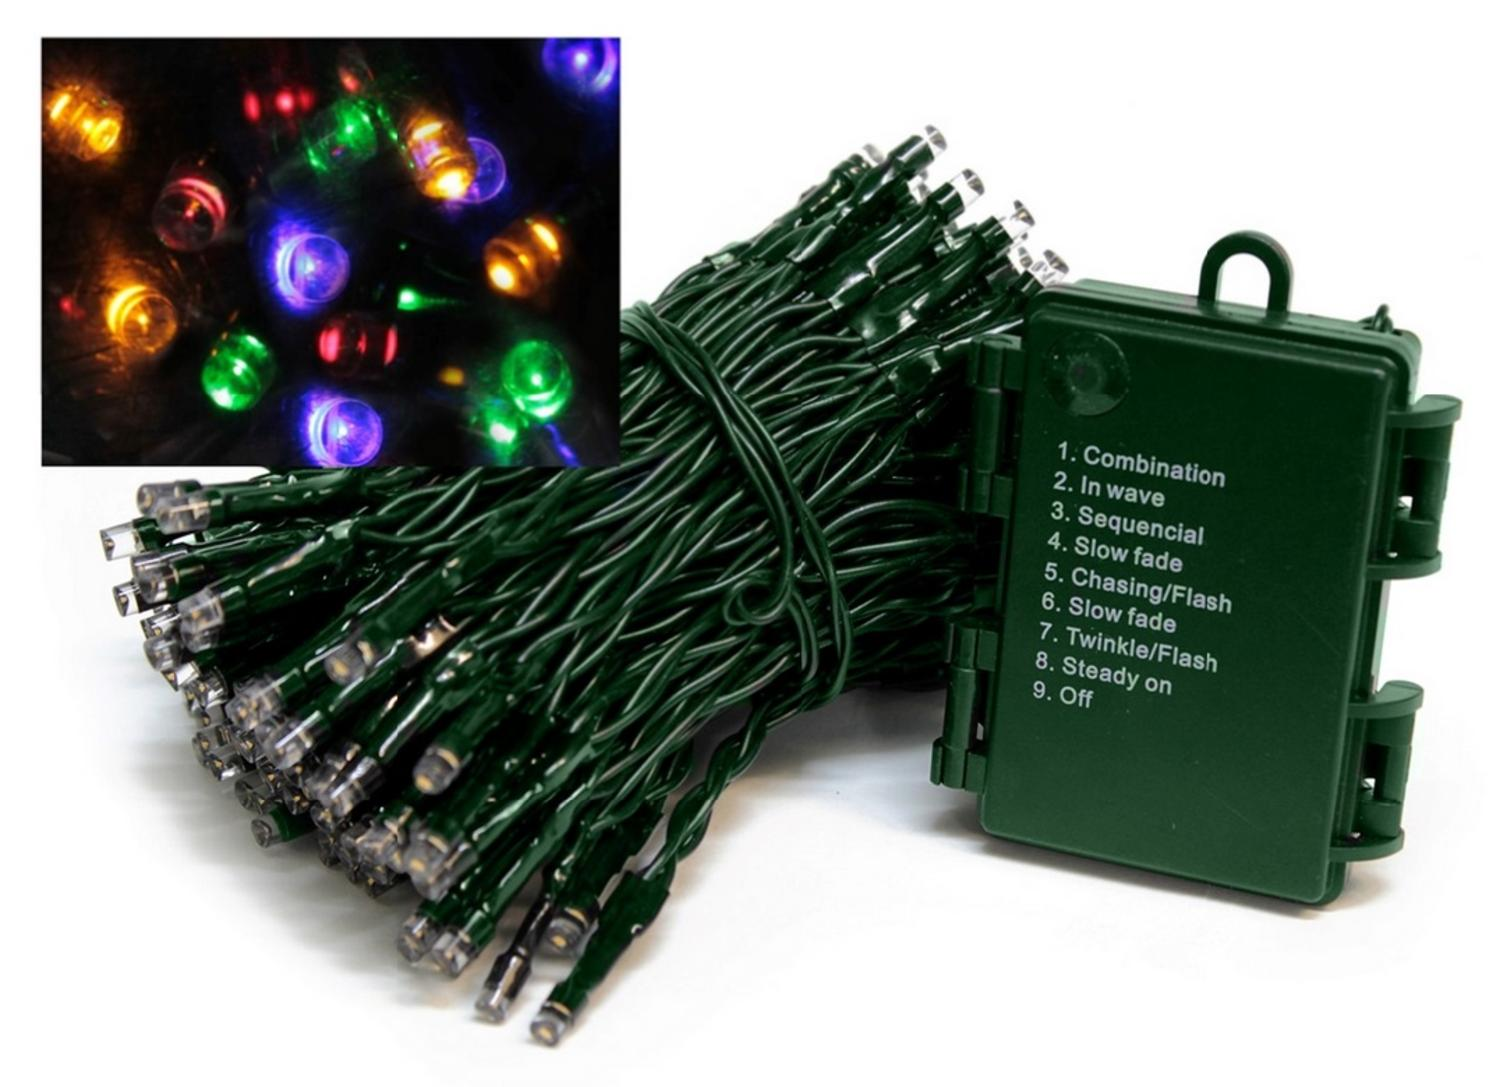 Set of 1152 Battery Operated Multi-Function Cool White LED Wide ...